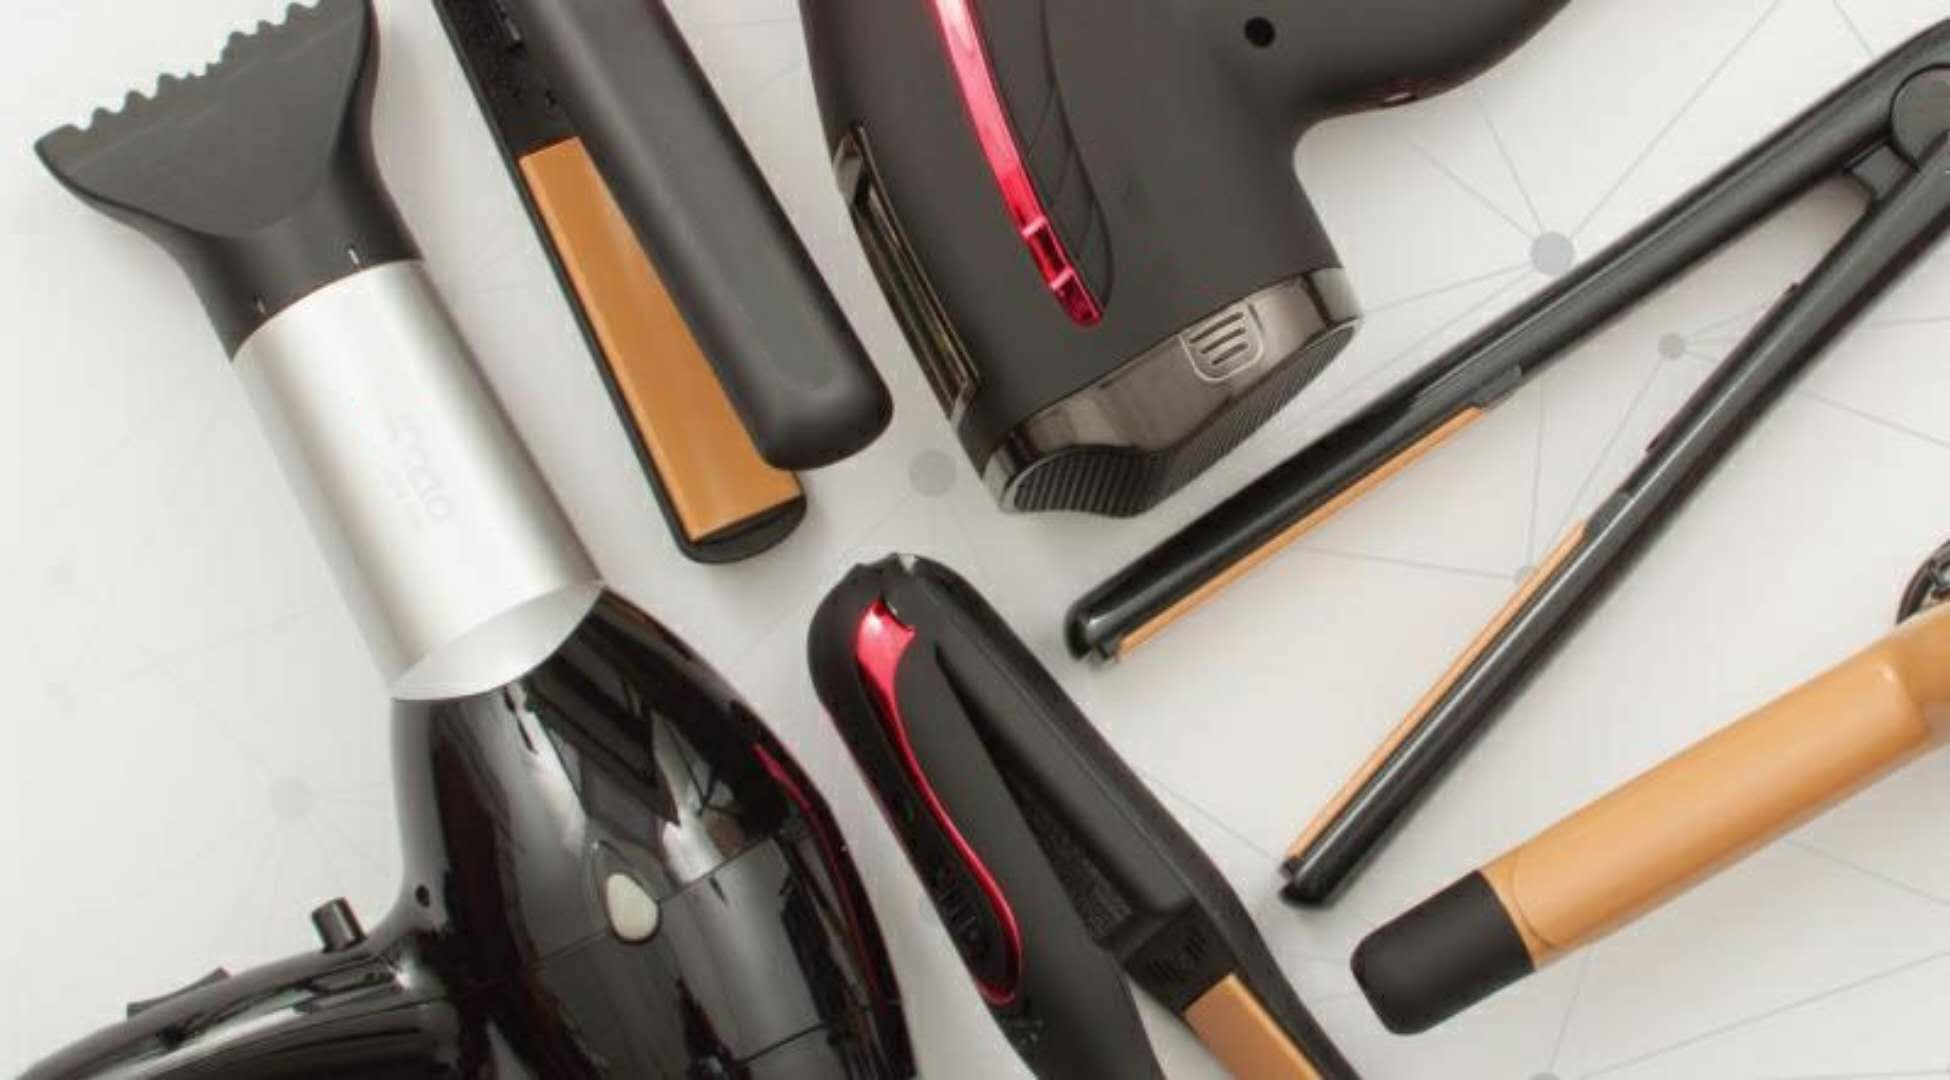 How to Clean Your Hair Straightener?